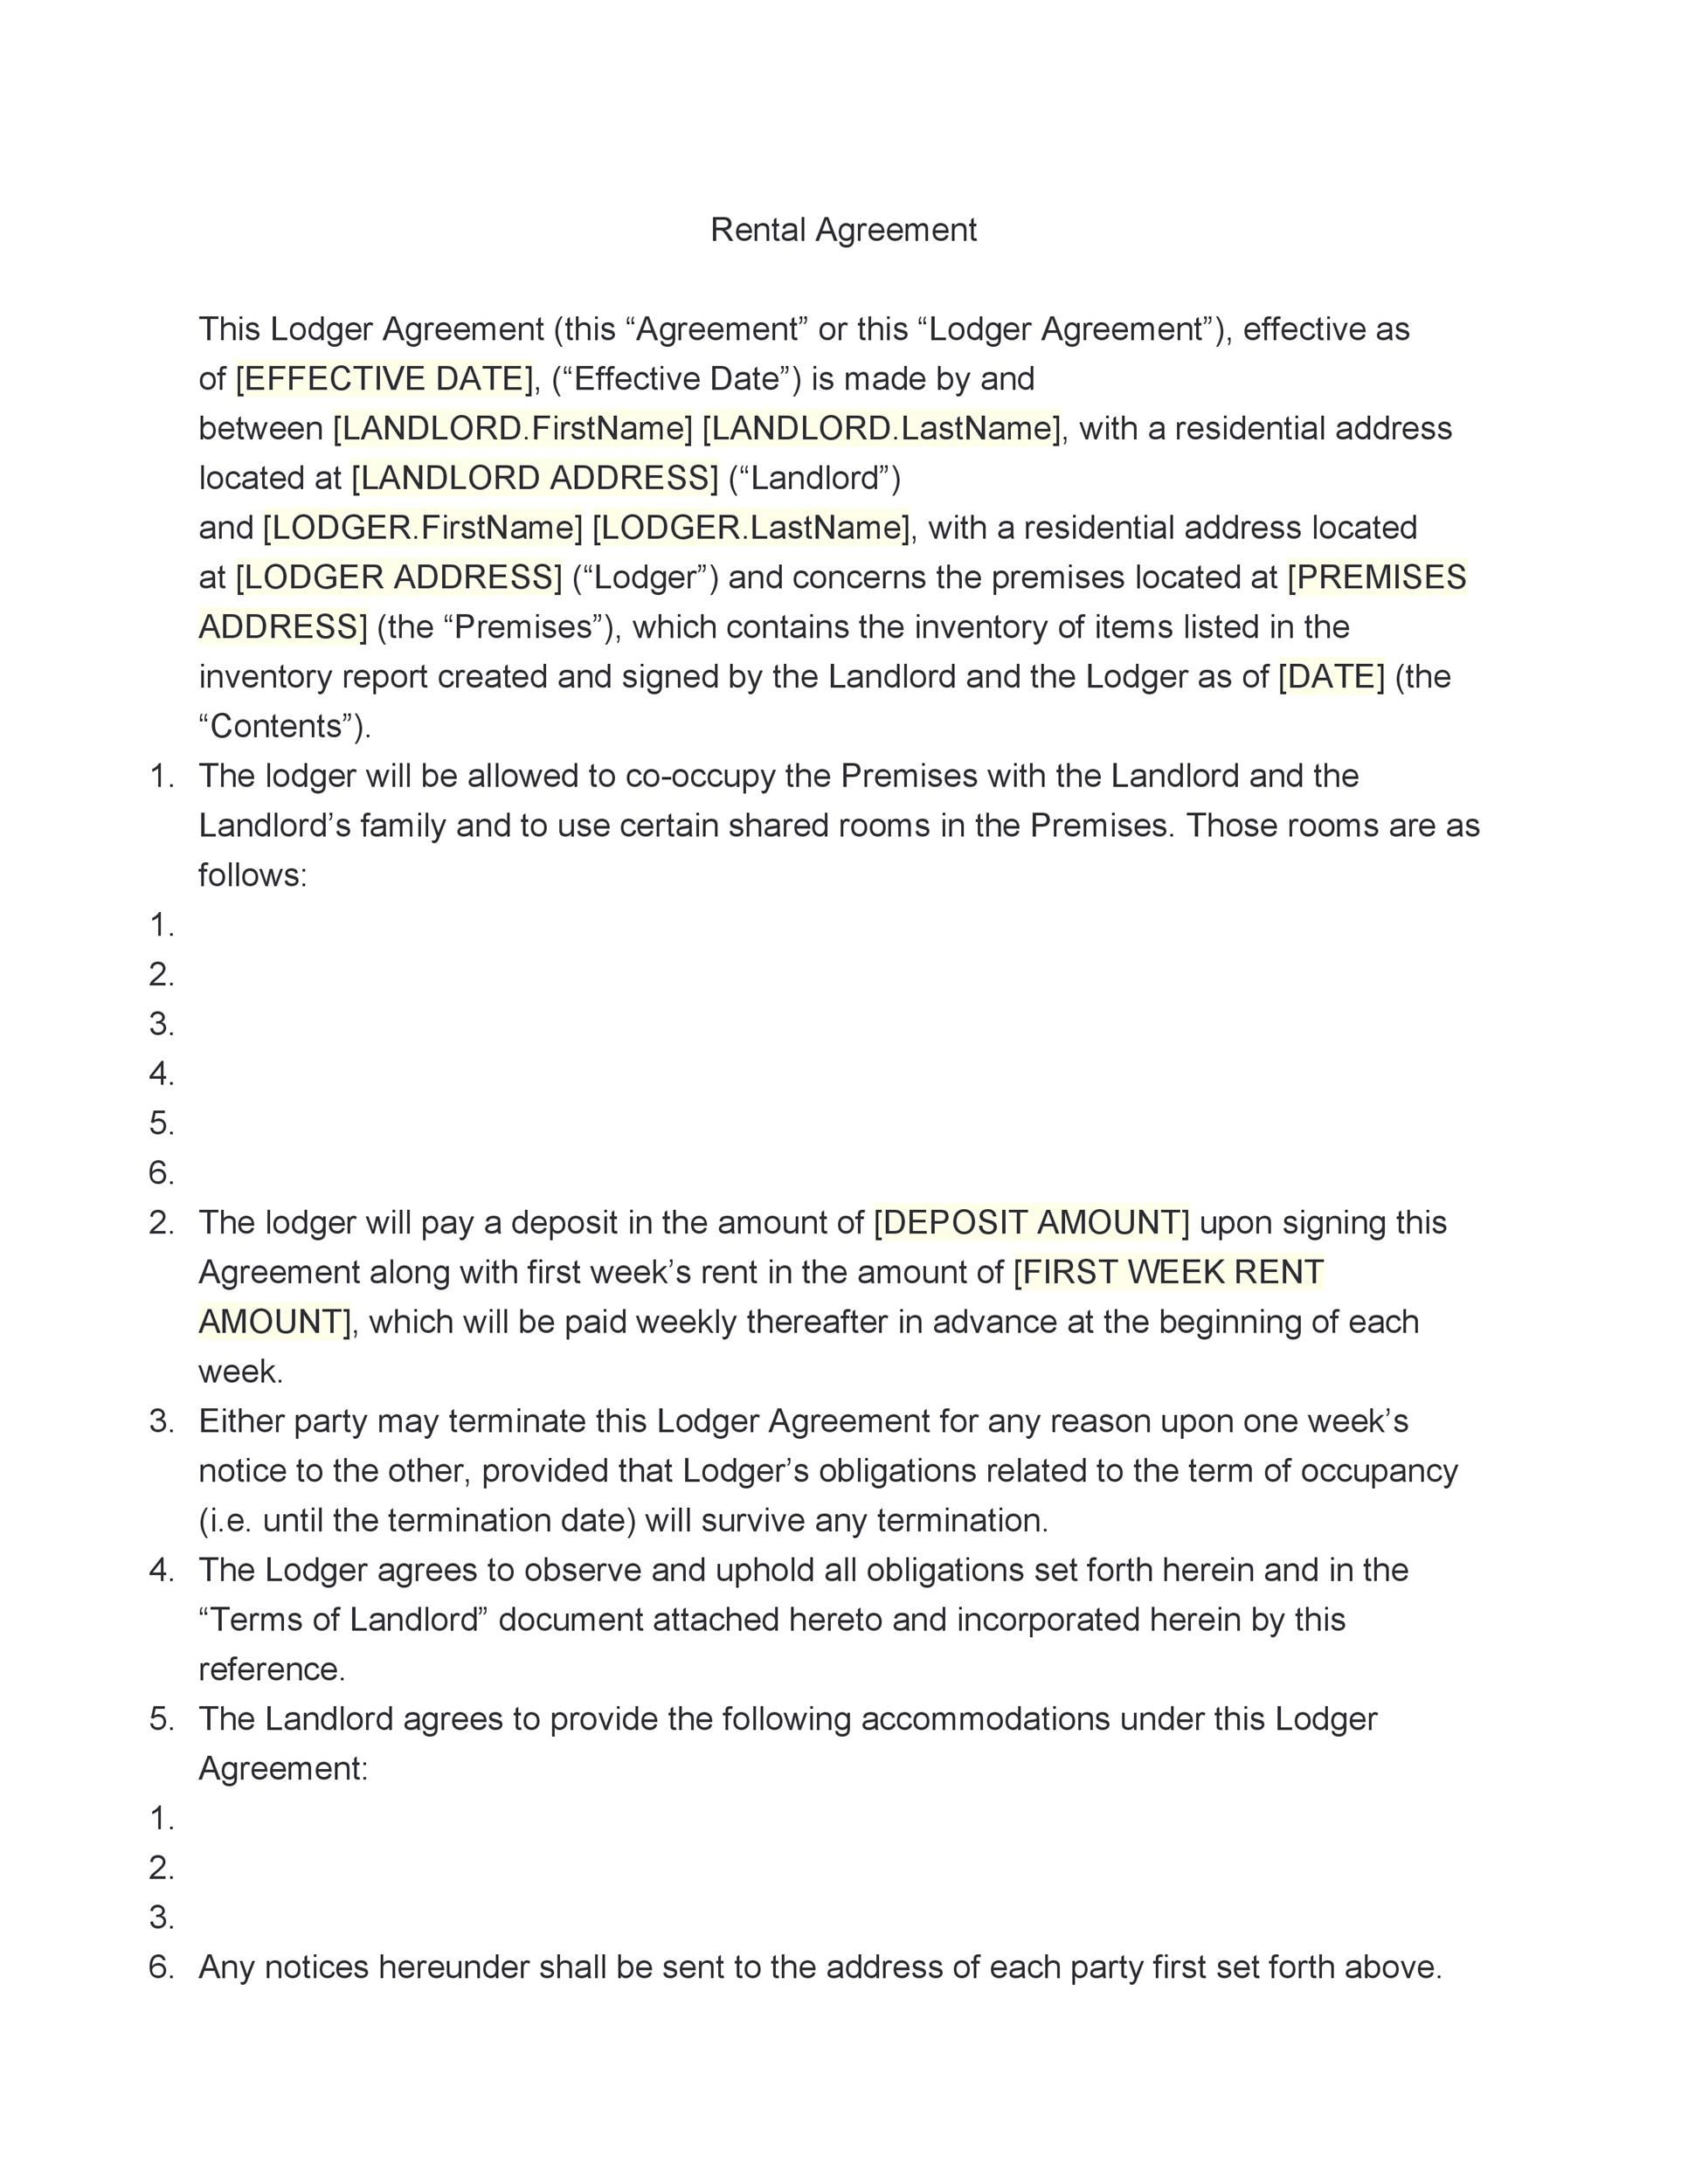 Rental Agreement Template. Room Rental Agreement Form Rental